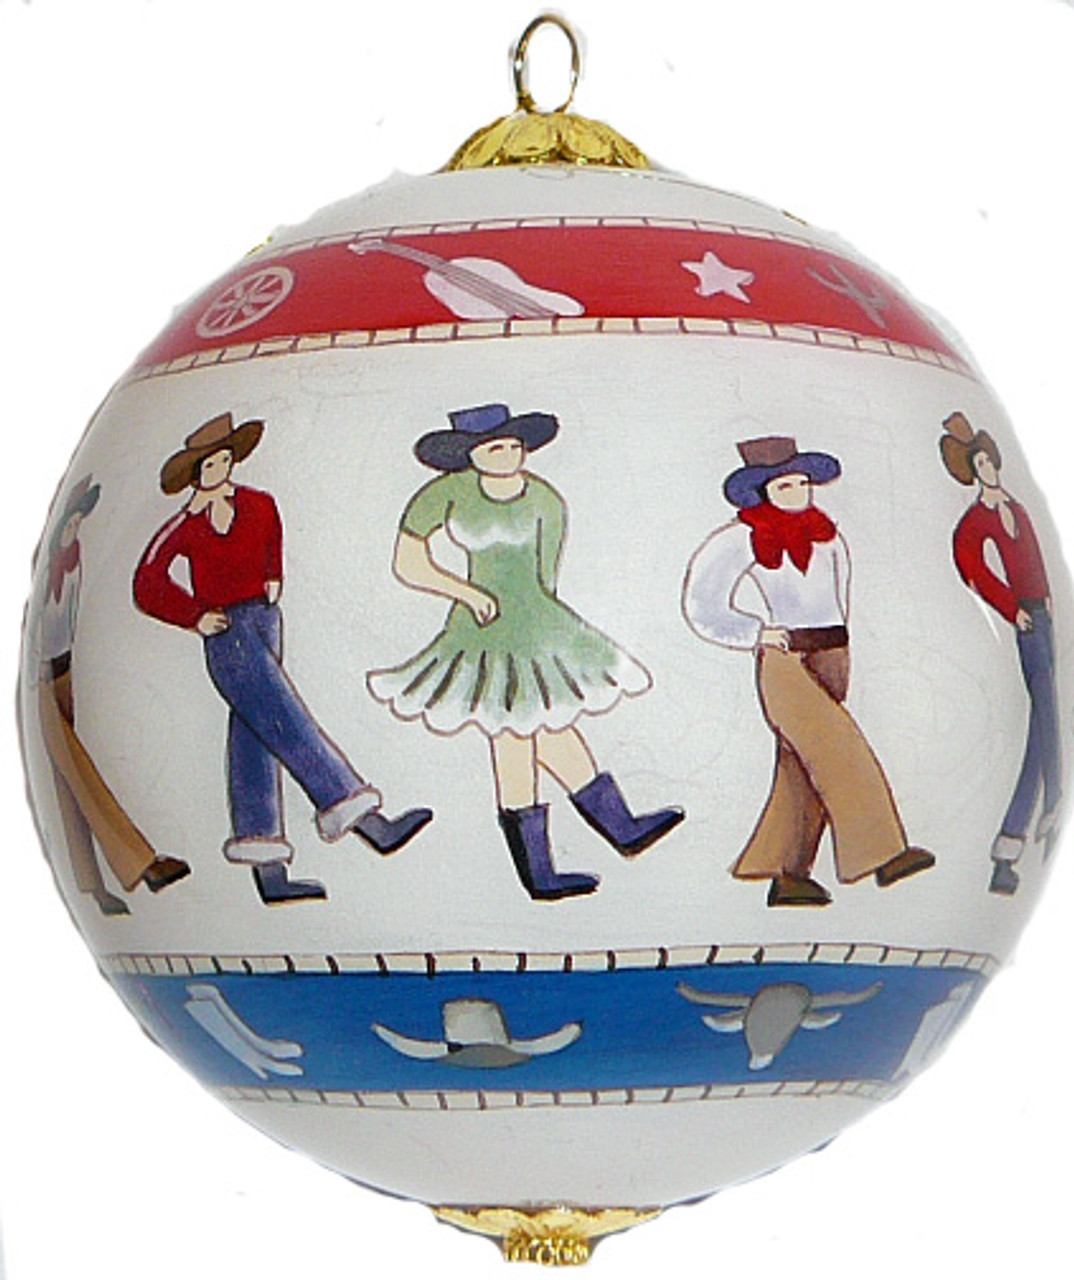 "Line dancers - 3"" Ornament Set of 2"